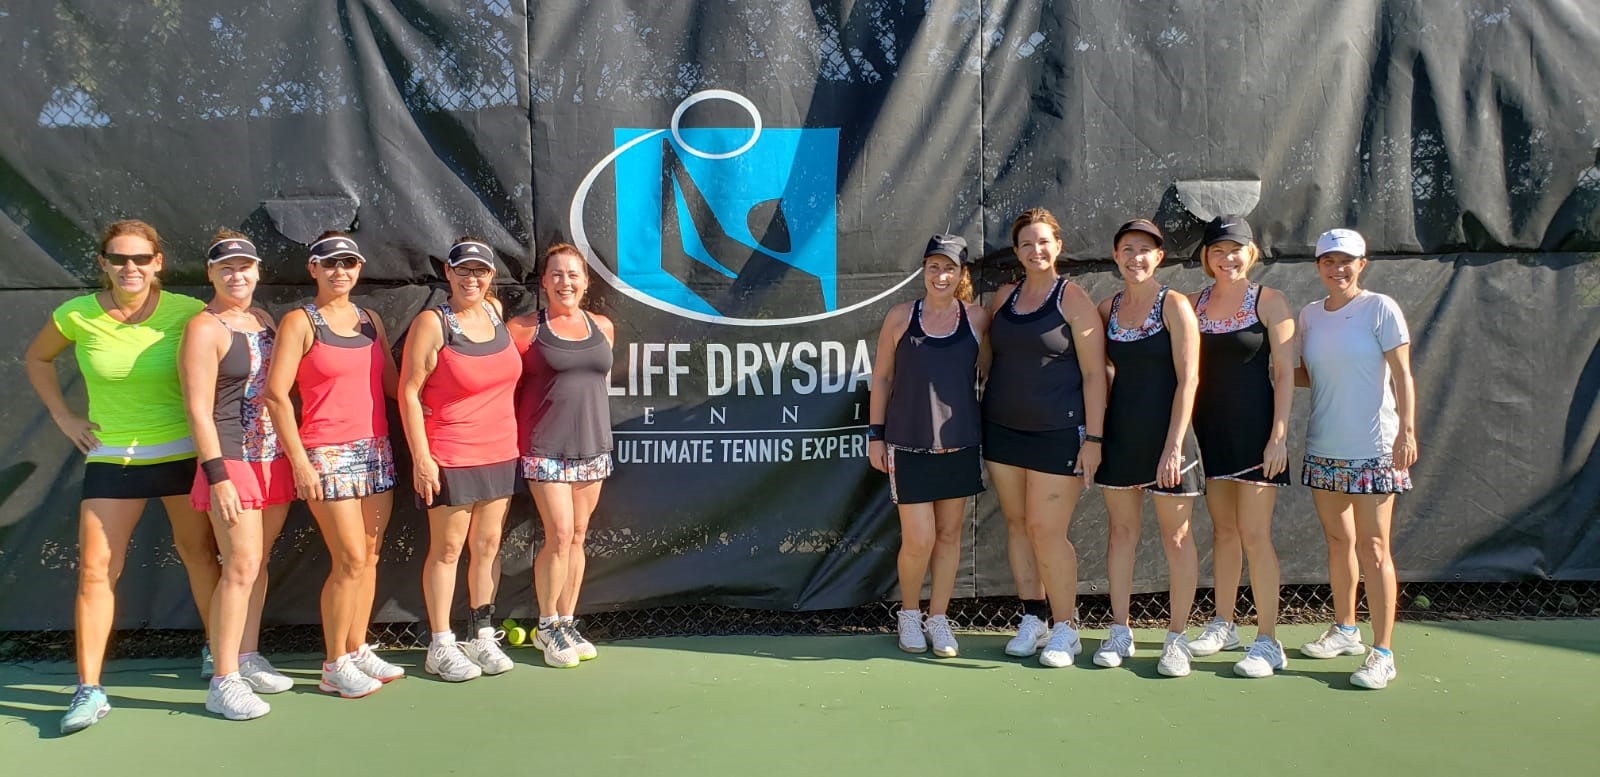 10 Women Tennis Players lined up on Weston Tennis Center court